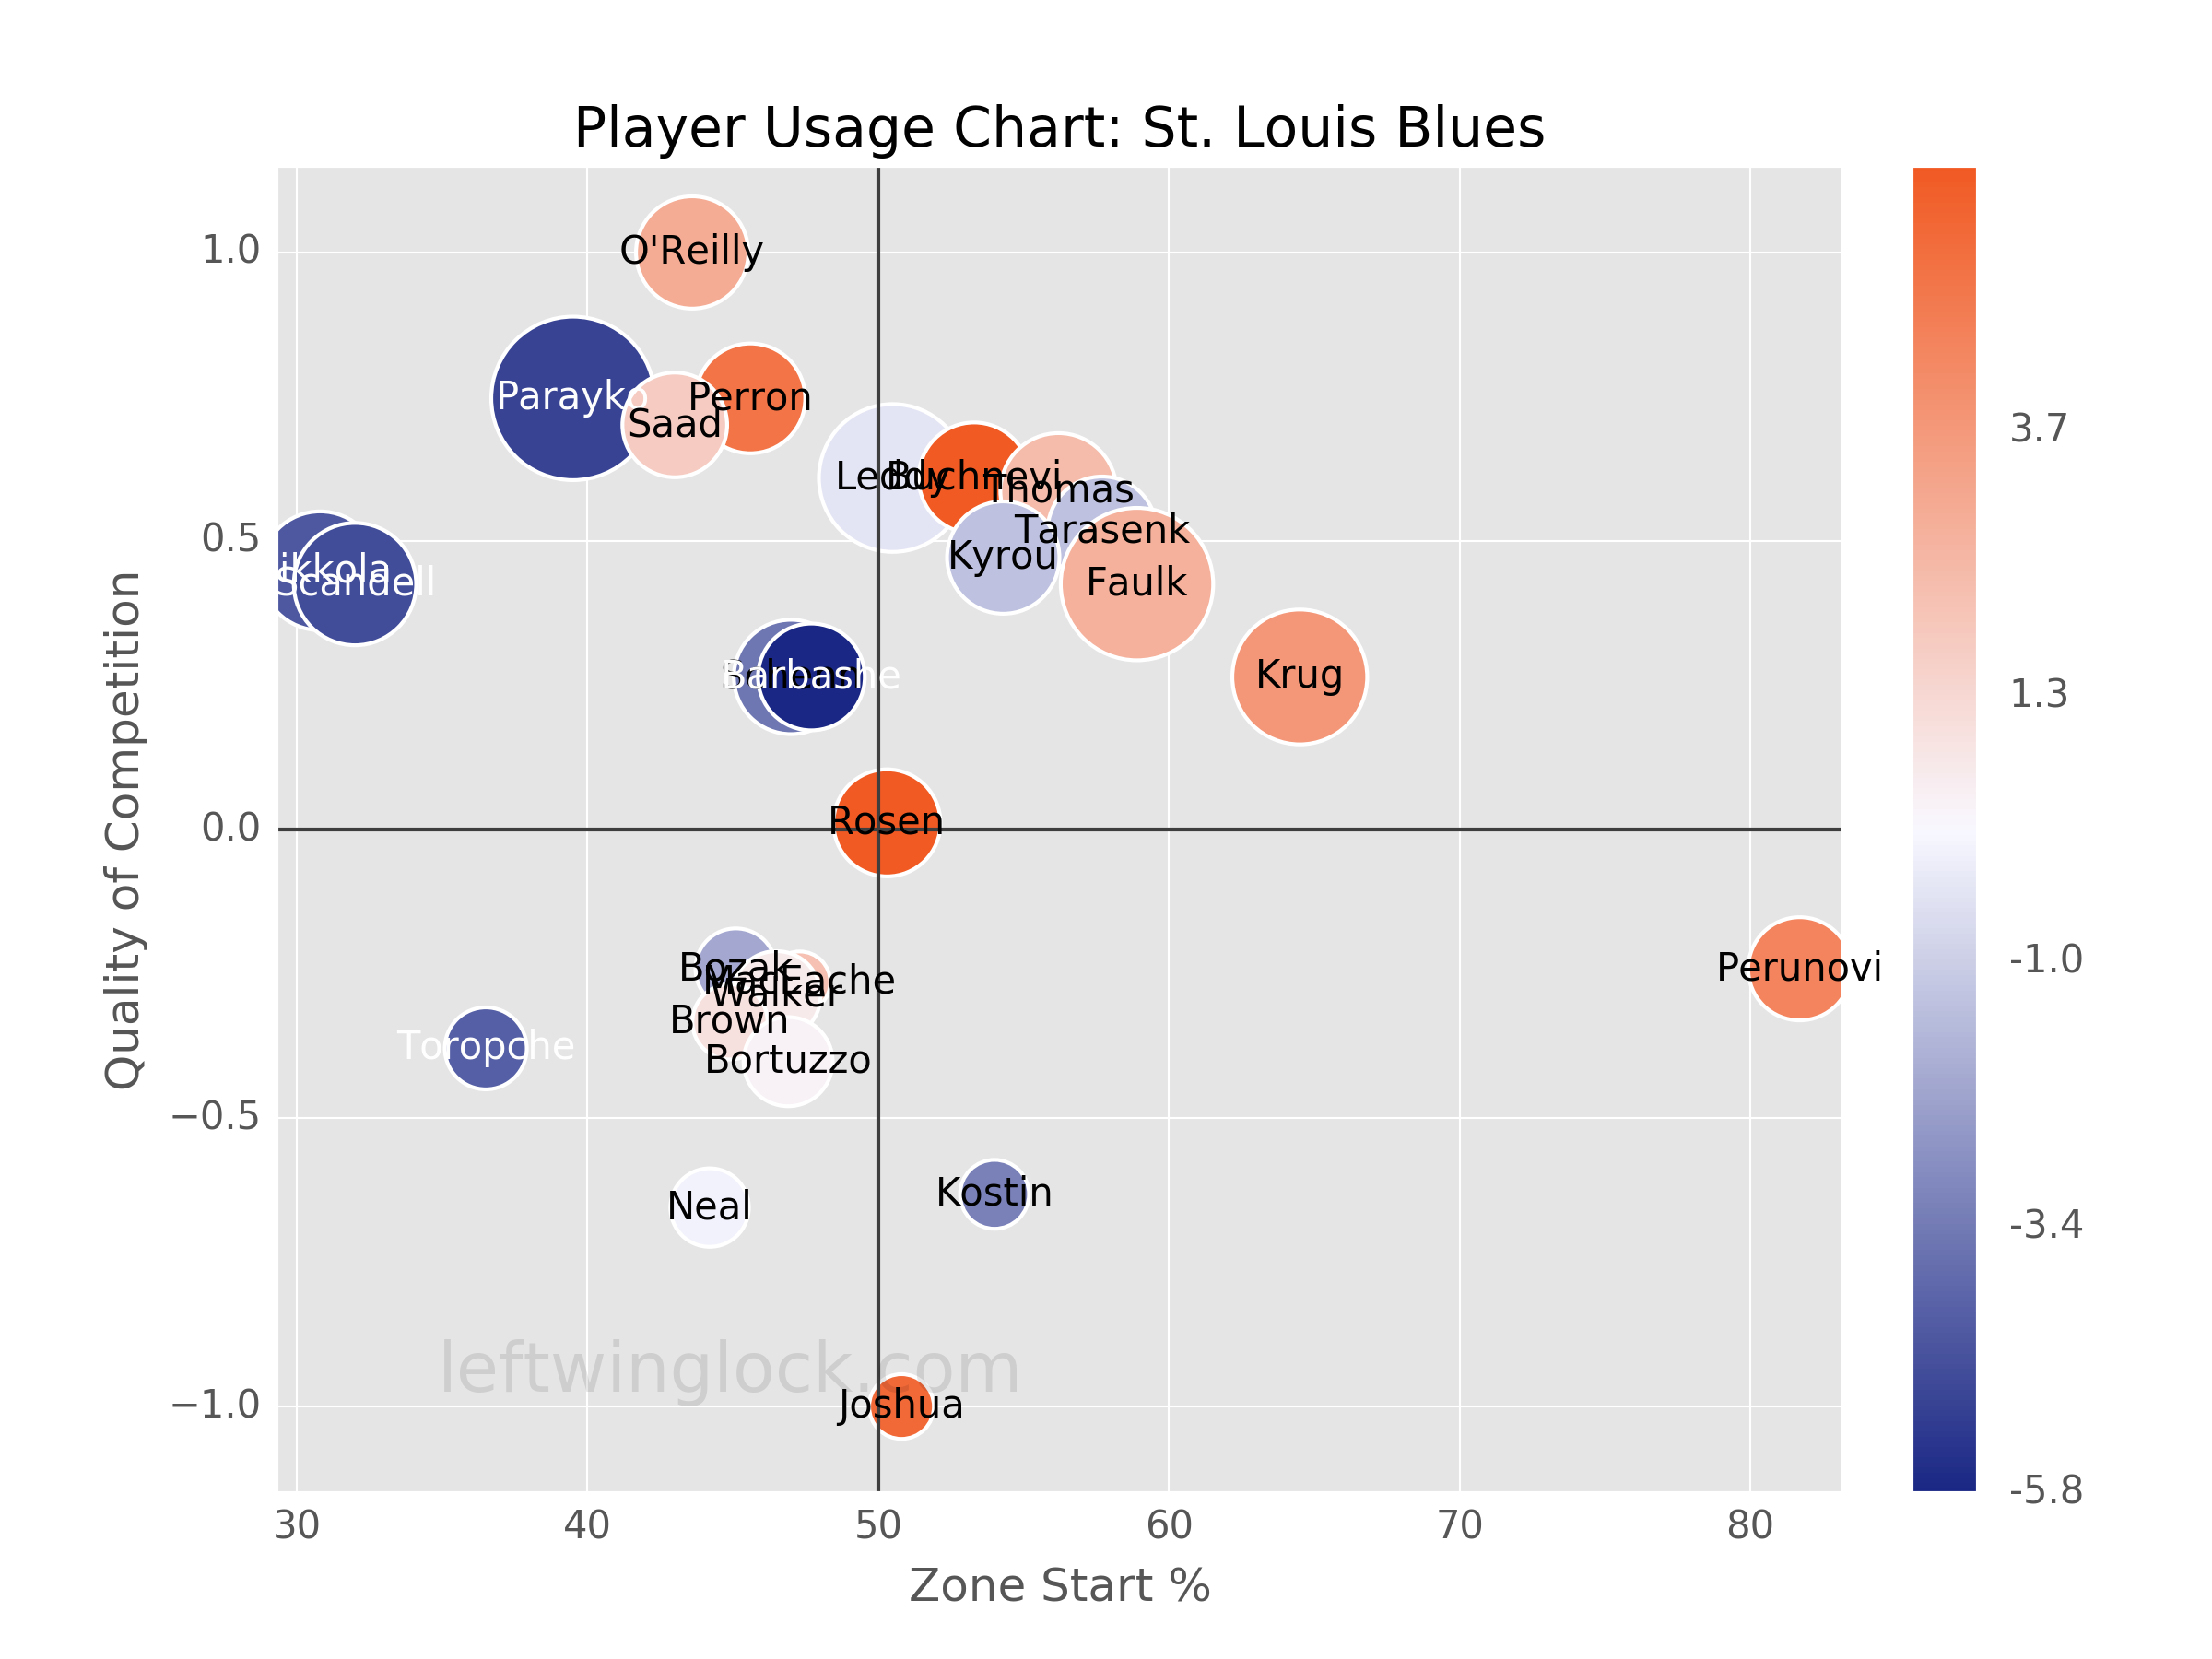 St. Louis Blues Player Usage Chart